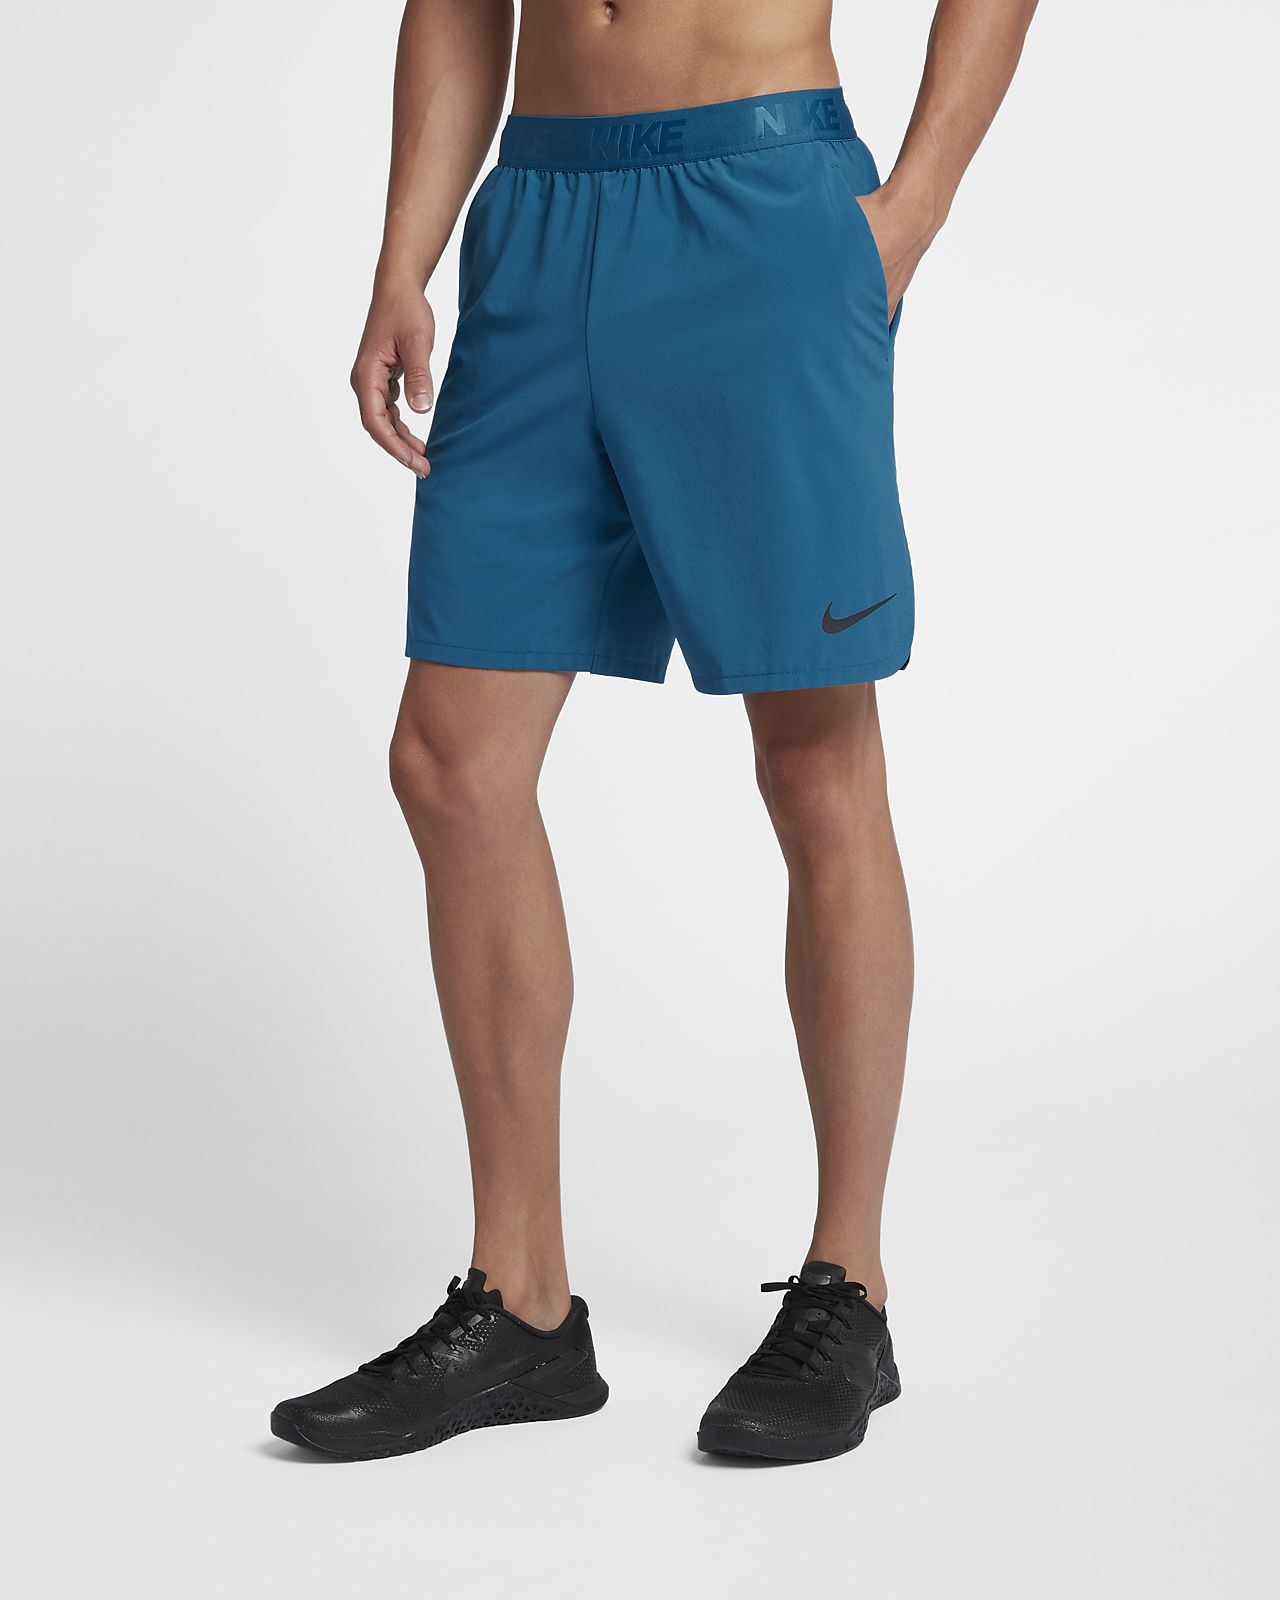 f41f1aabf23f Nike Flex Men s 21cm Training Shorts. Nike.com NL